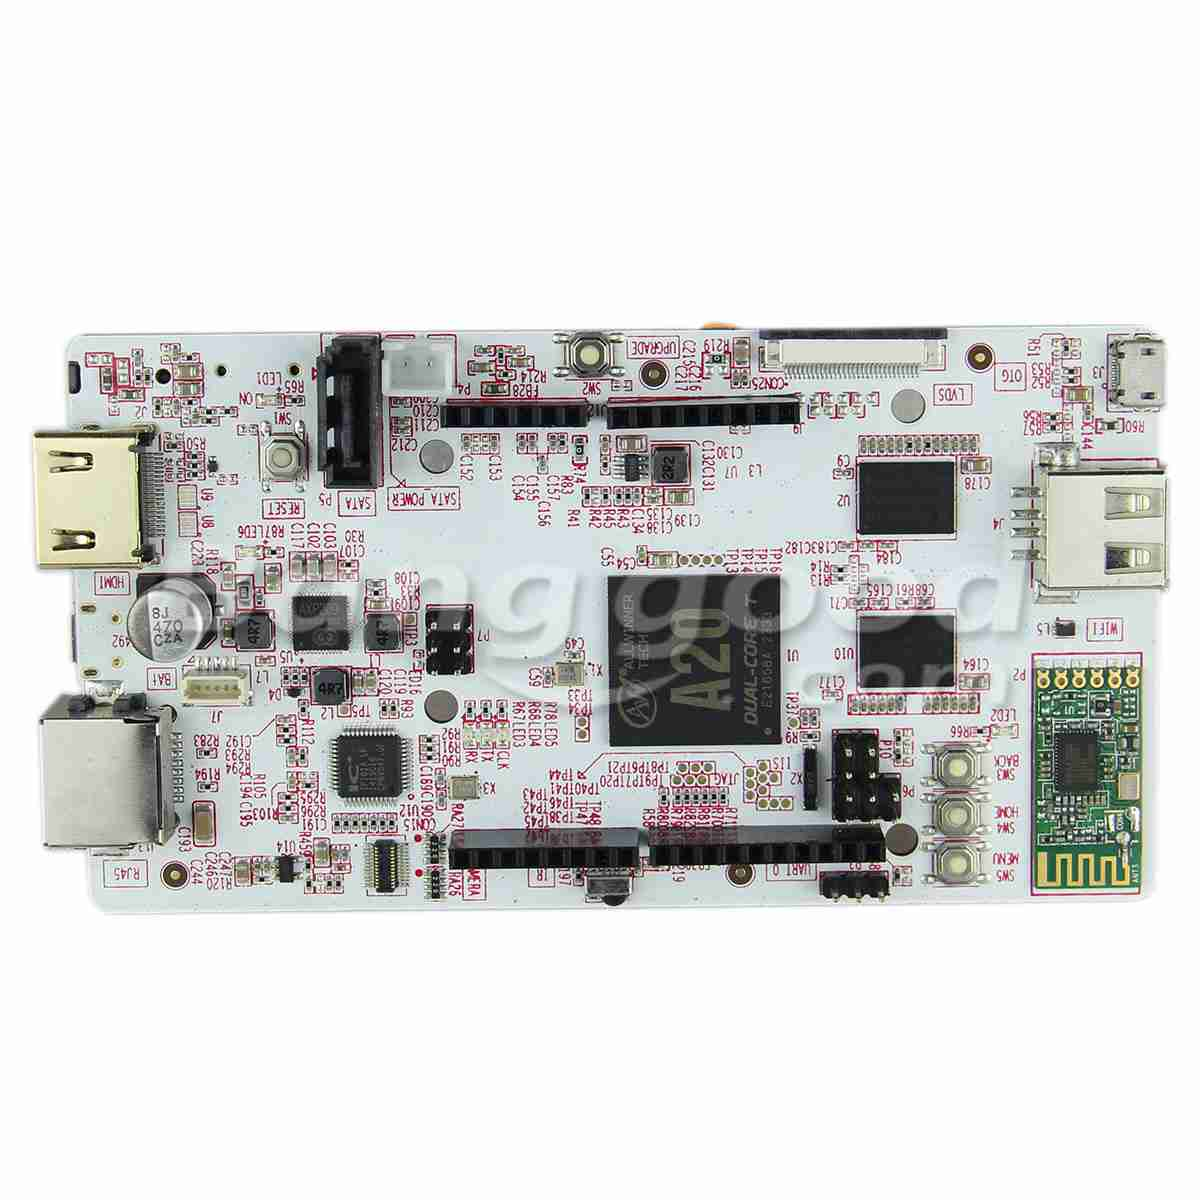 PCDuino V3 1GHz Dual Core Cortex-A7 Development Board For Arduino PC